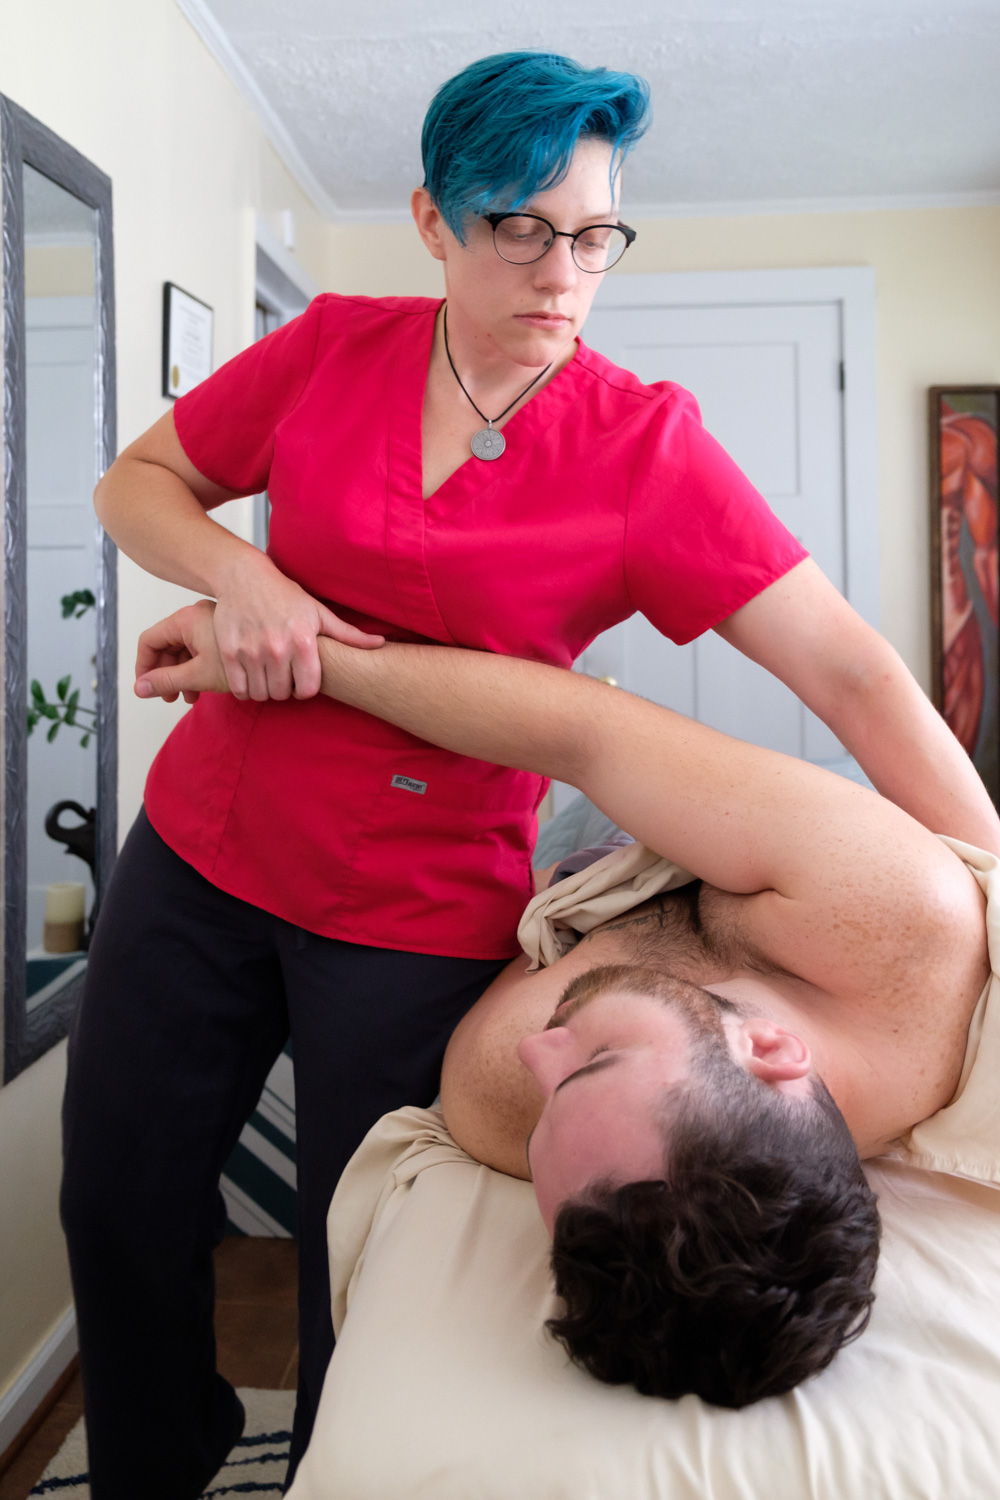 Massage therapist stretching client's arm.